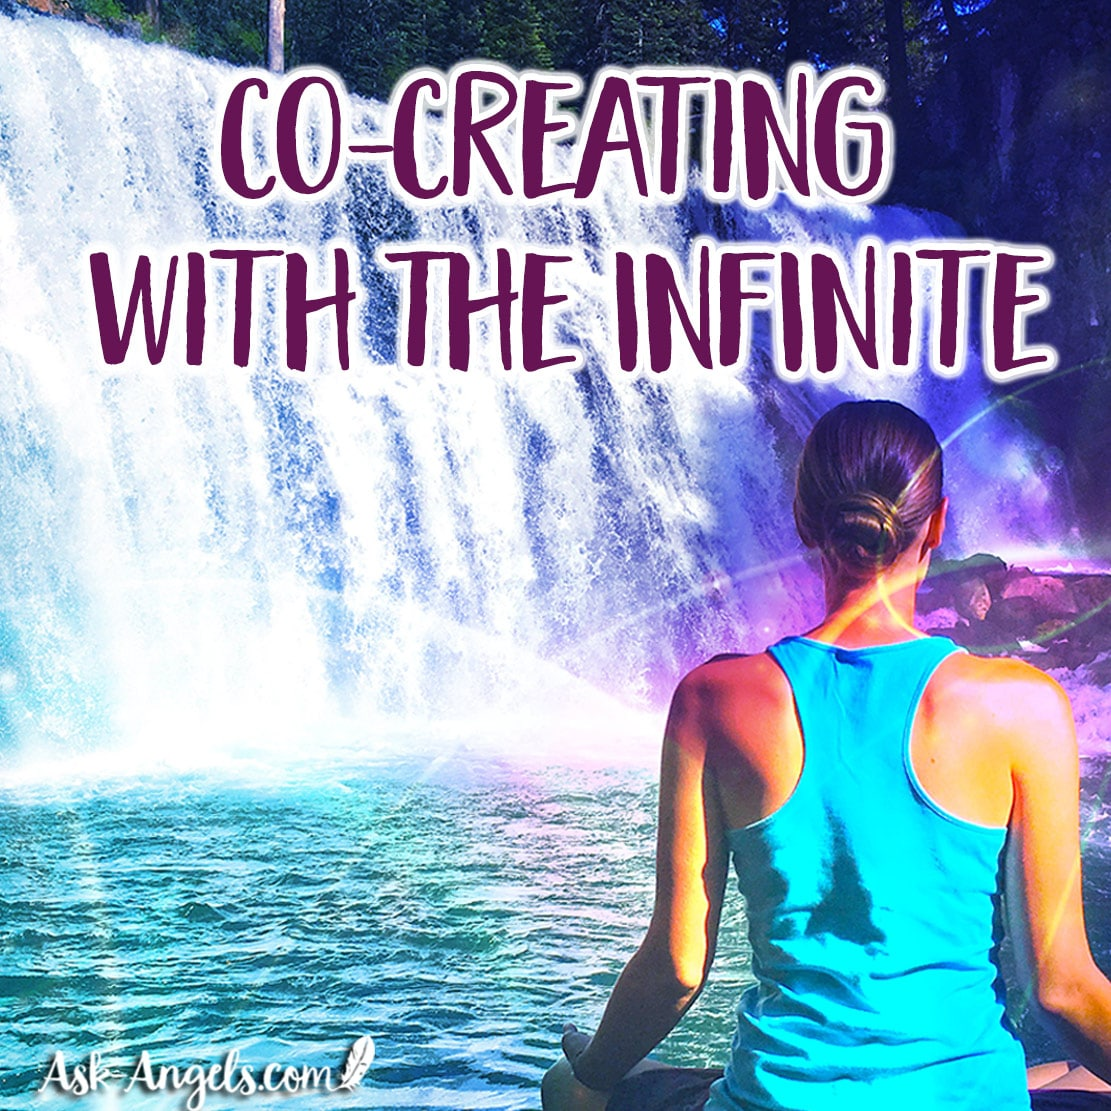 Co-Creating With The Infinite